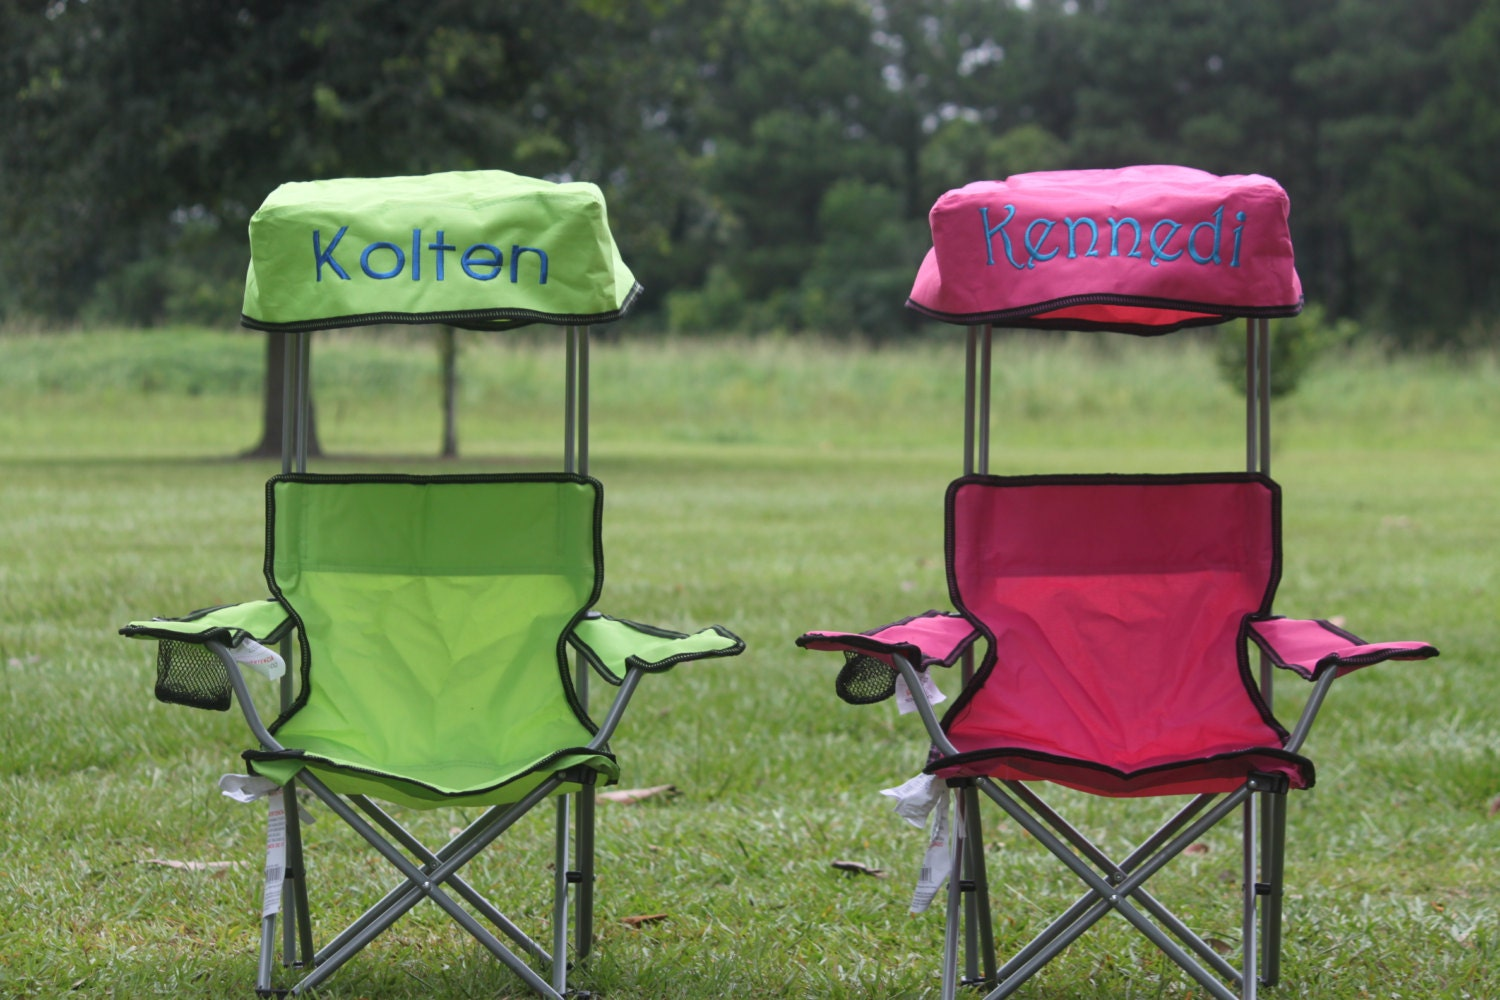 Kids foldable canopy beach c chair monogram personalized pink blue